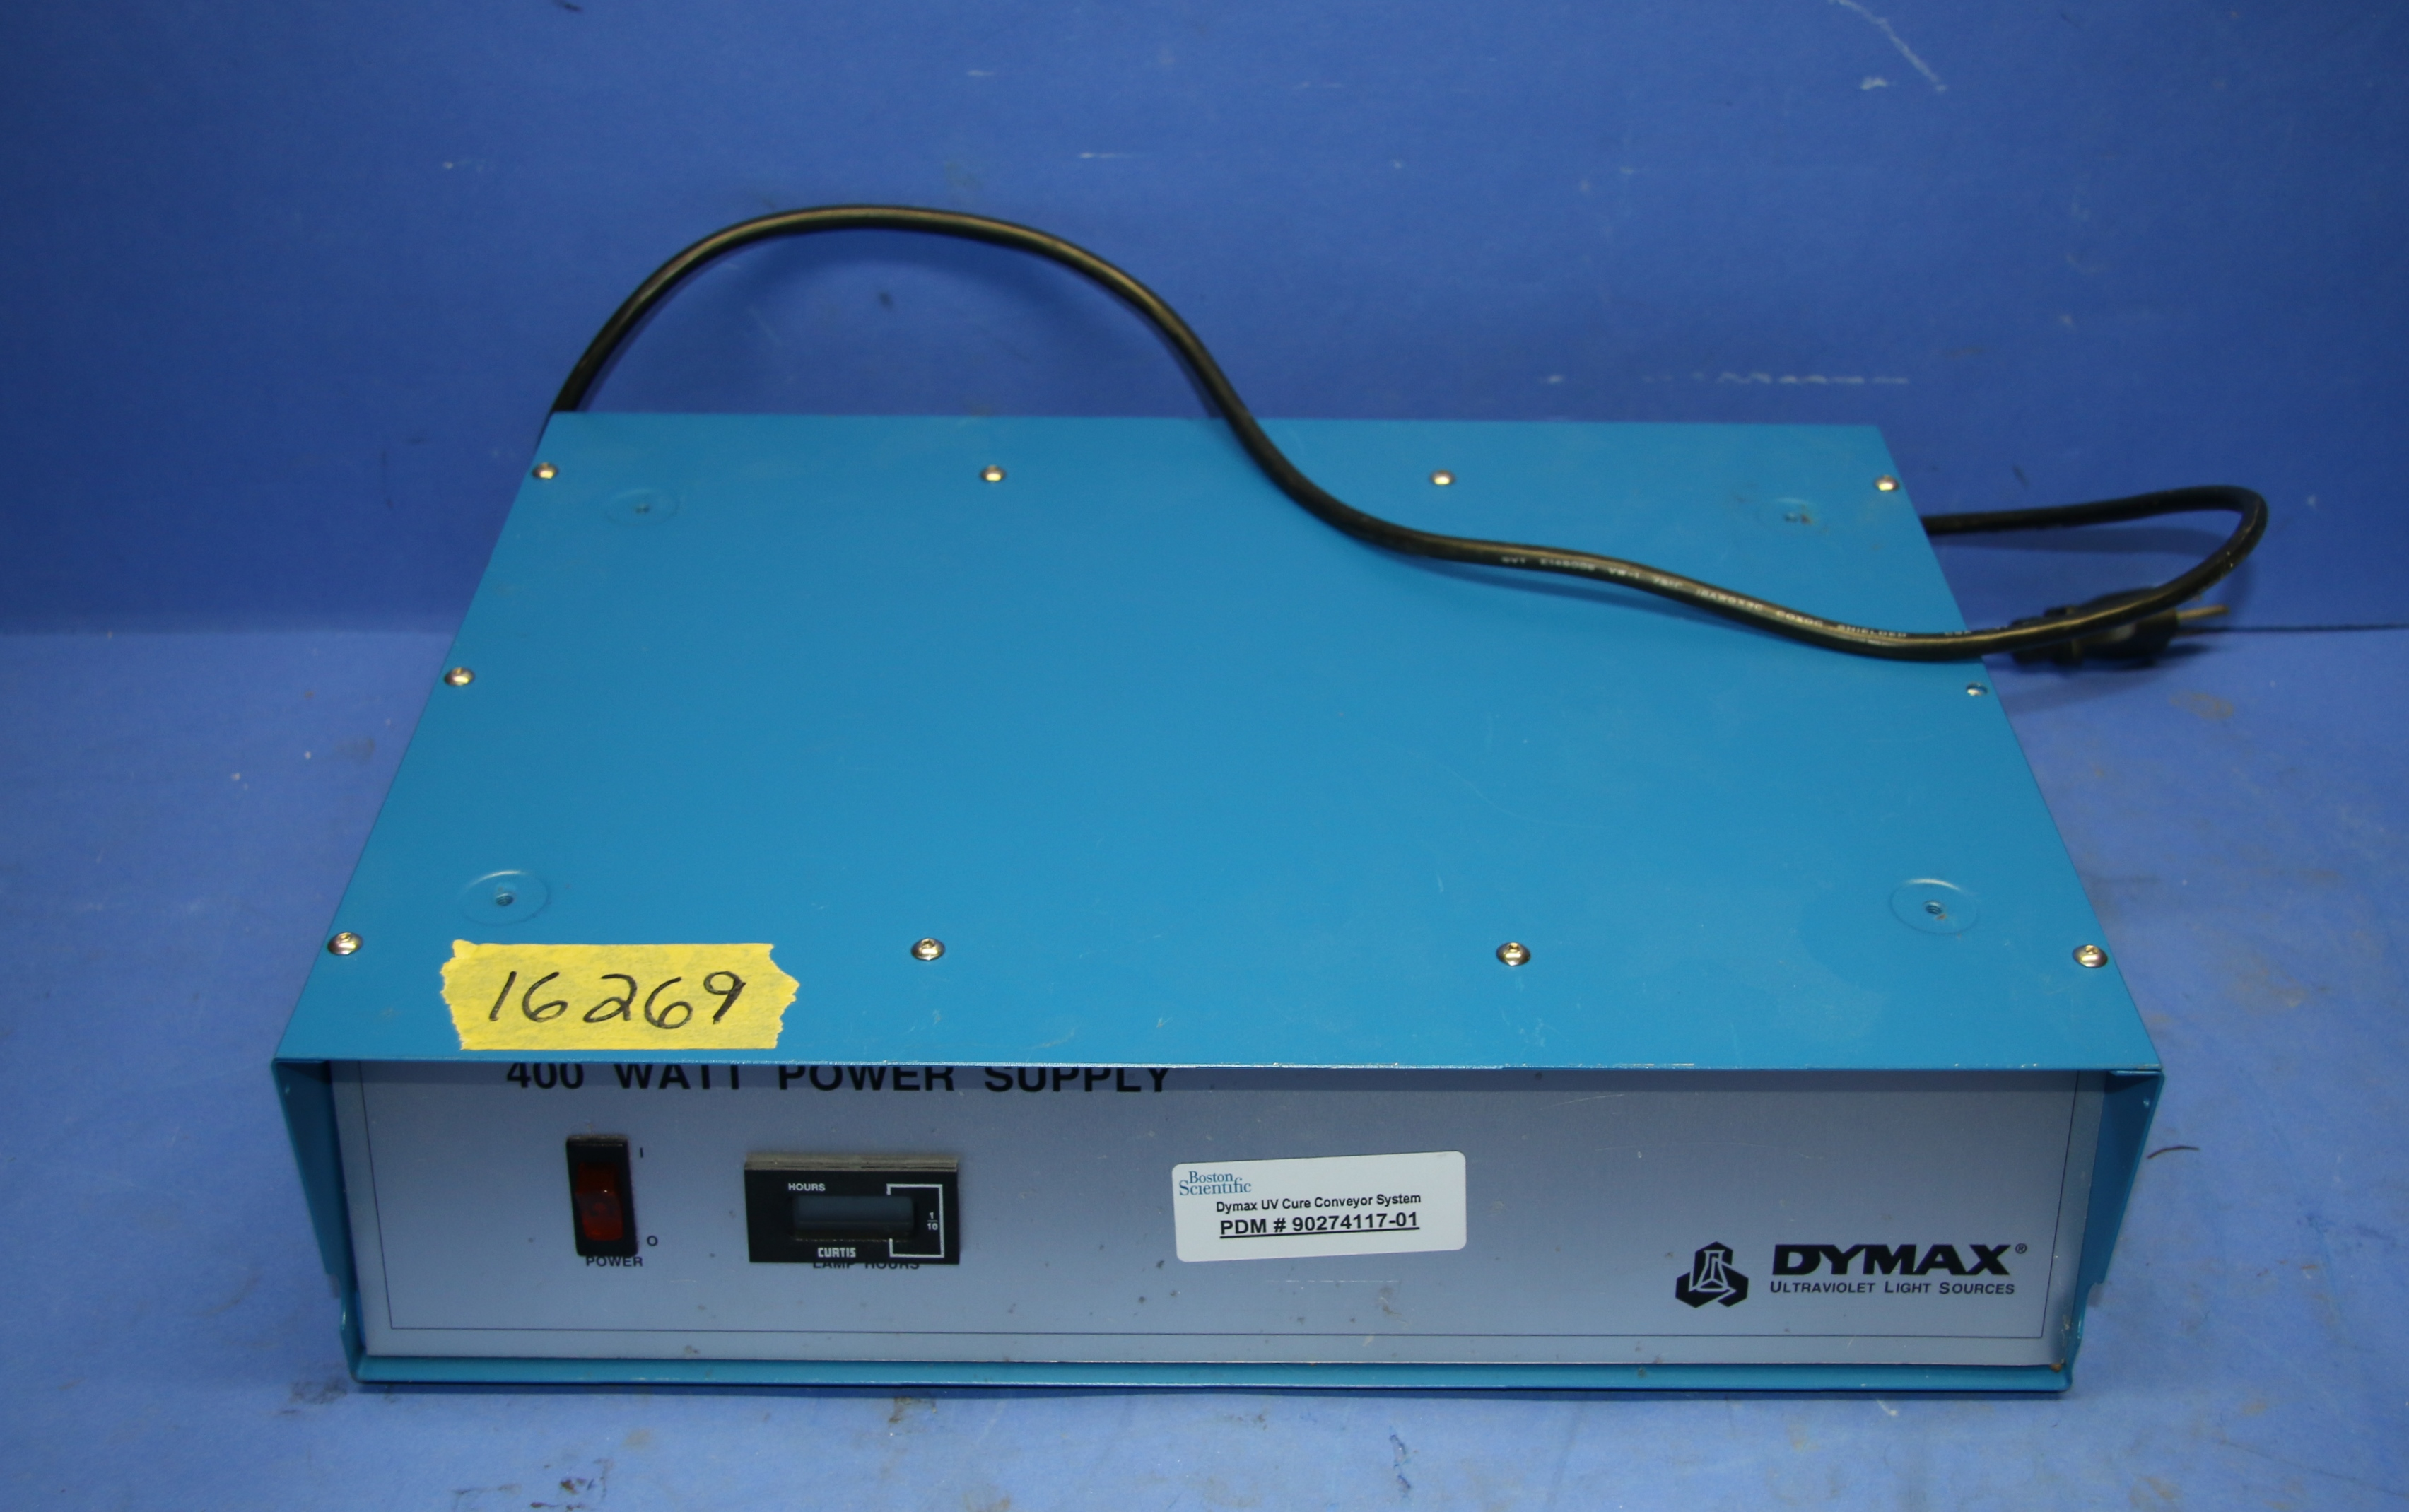 (1) Used Dymax 400W EC Power Supply (1) Used Dymax 1200-EC Ultraviolet Light Sou